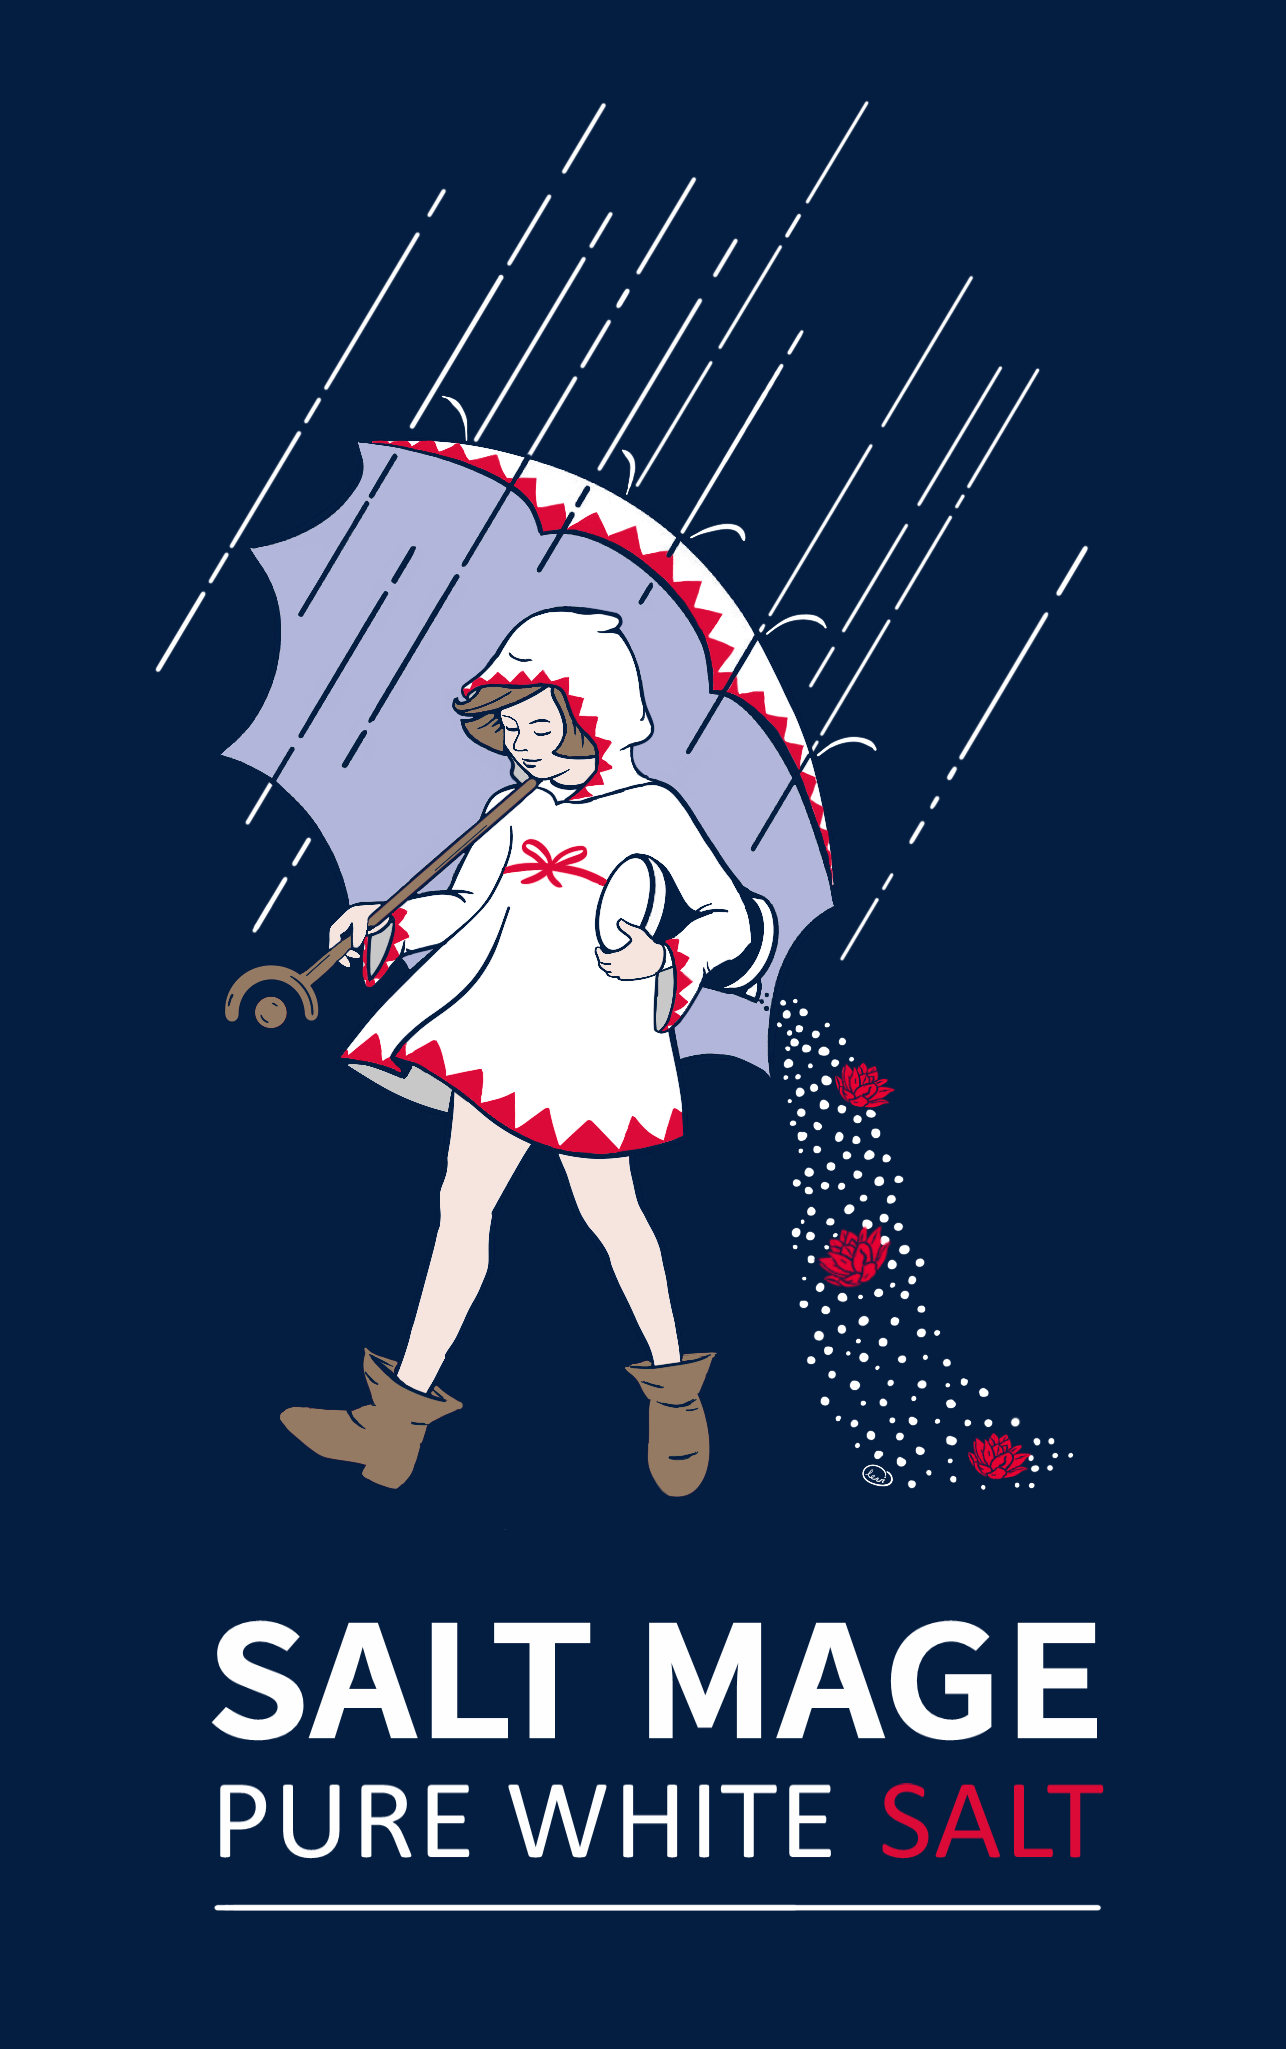 Embrace theSALT MAGE - The White Mages of the world aren't happy! How unhappy? You might say they're salty! Expressing my inner salt mage with this iconic image Click through for your very own salt-ily branded stuff! Or get something for that special salt mage in your life. Stay salty!